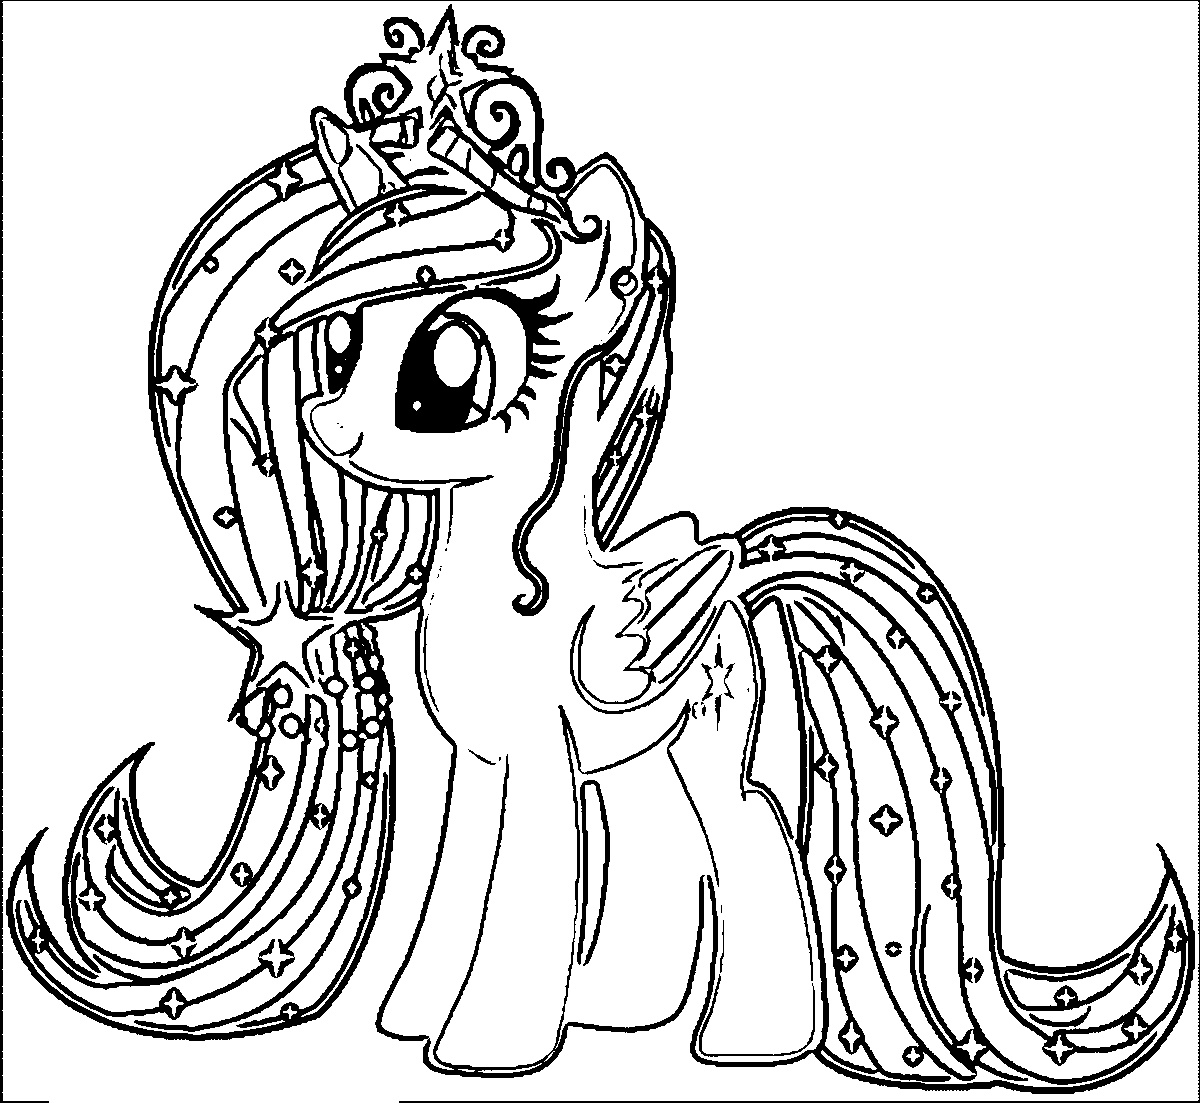 coloring sheets my little pony my little pony coloring pages for pony lovers educative sheets my pony coloring little